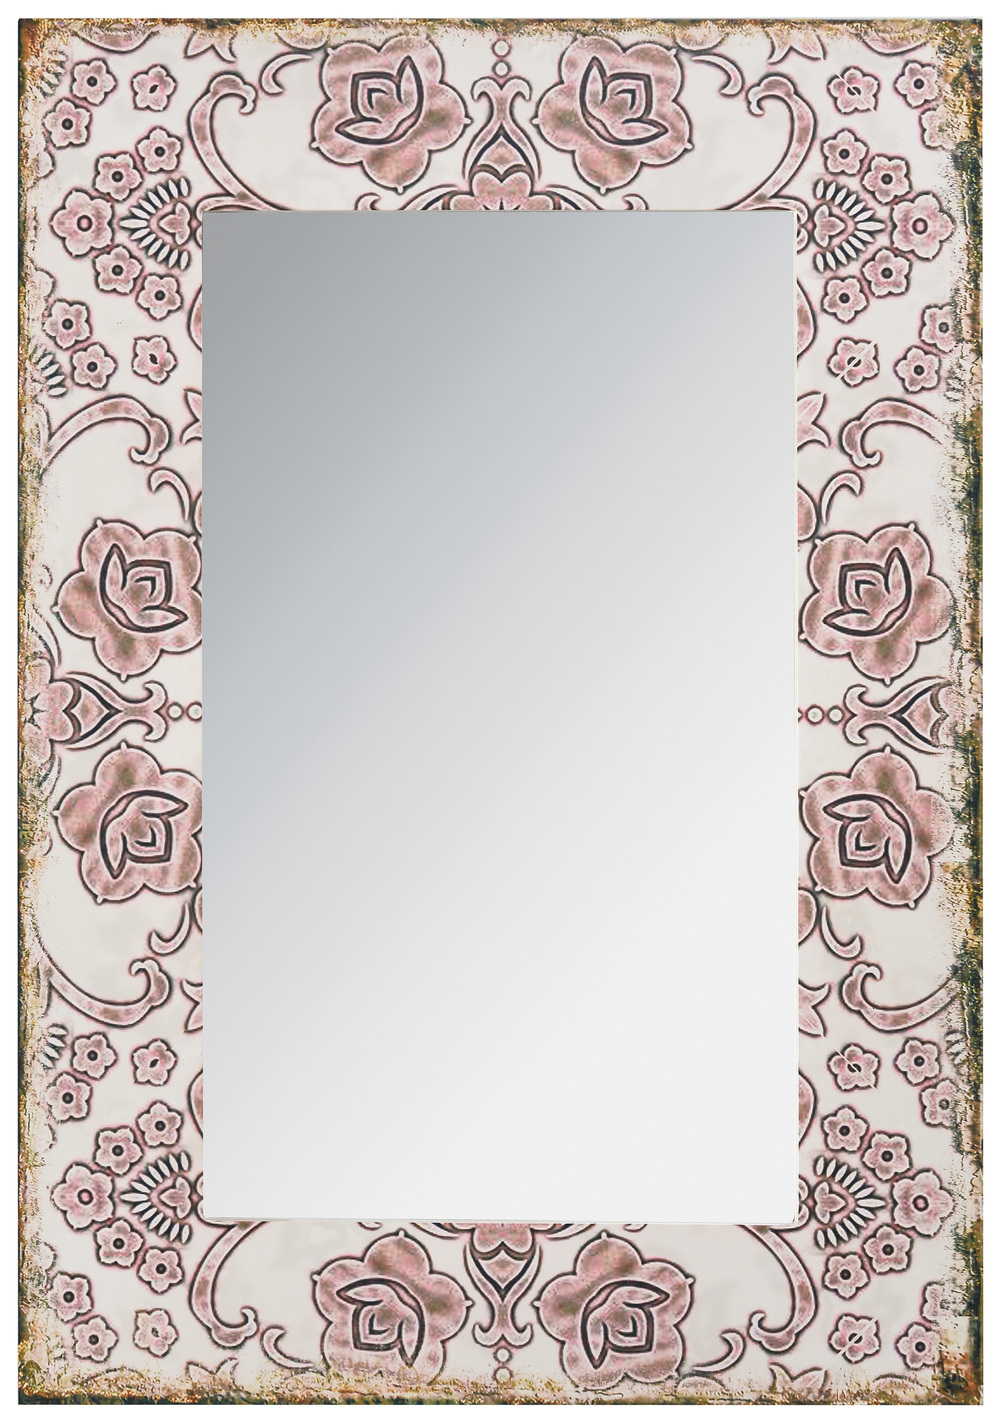 €100 WOODEN WALL MIRROR IN PASTEL PINK COLOR 55X2X77